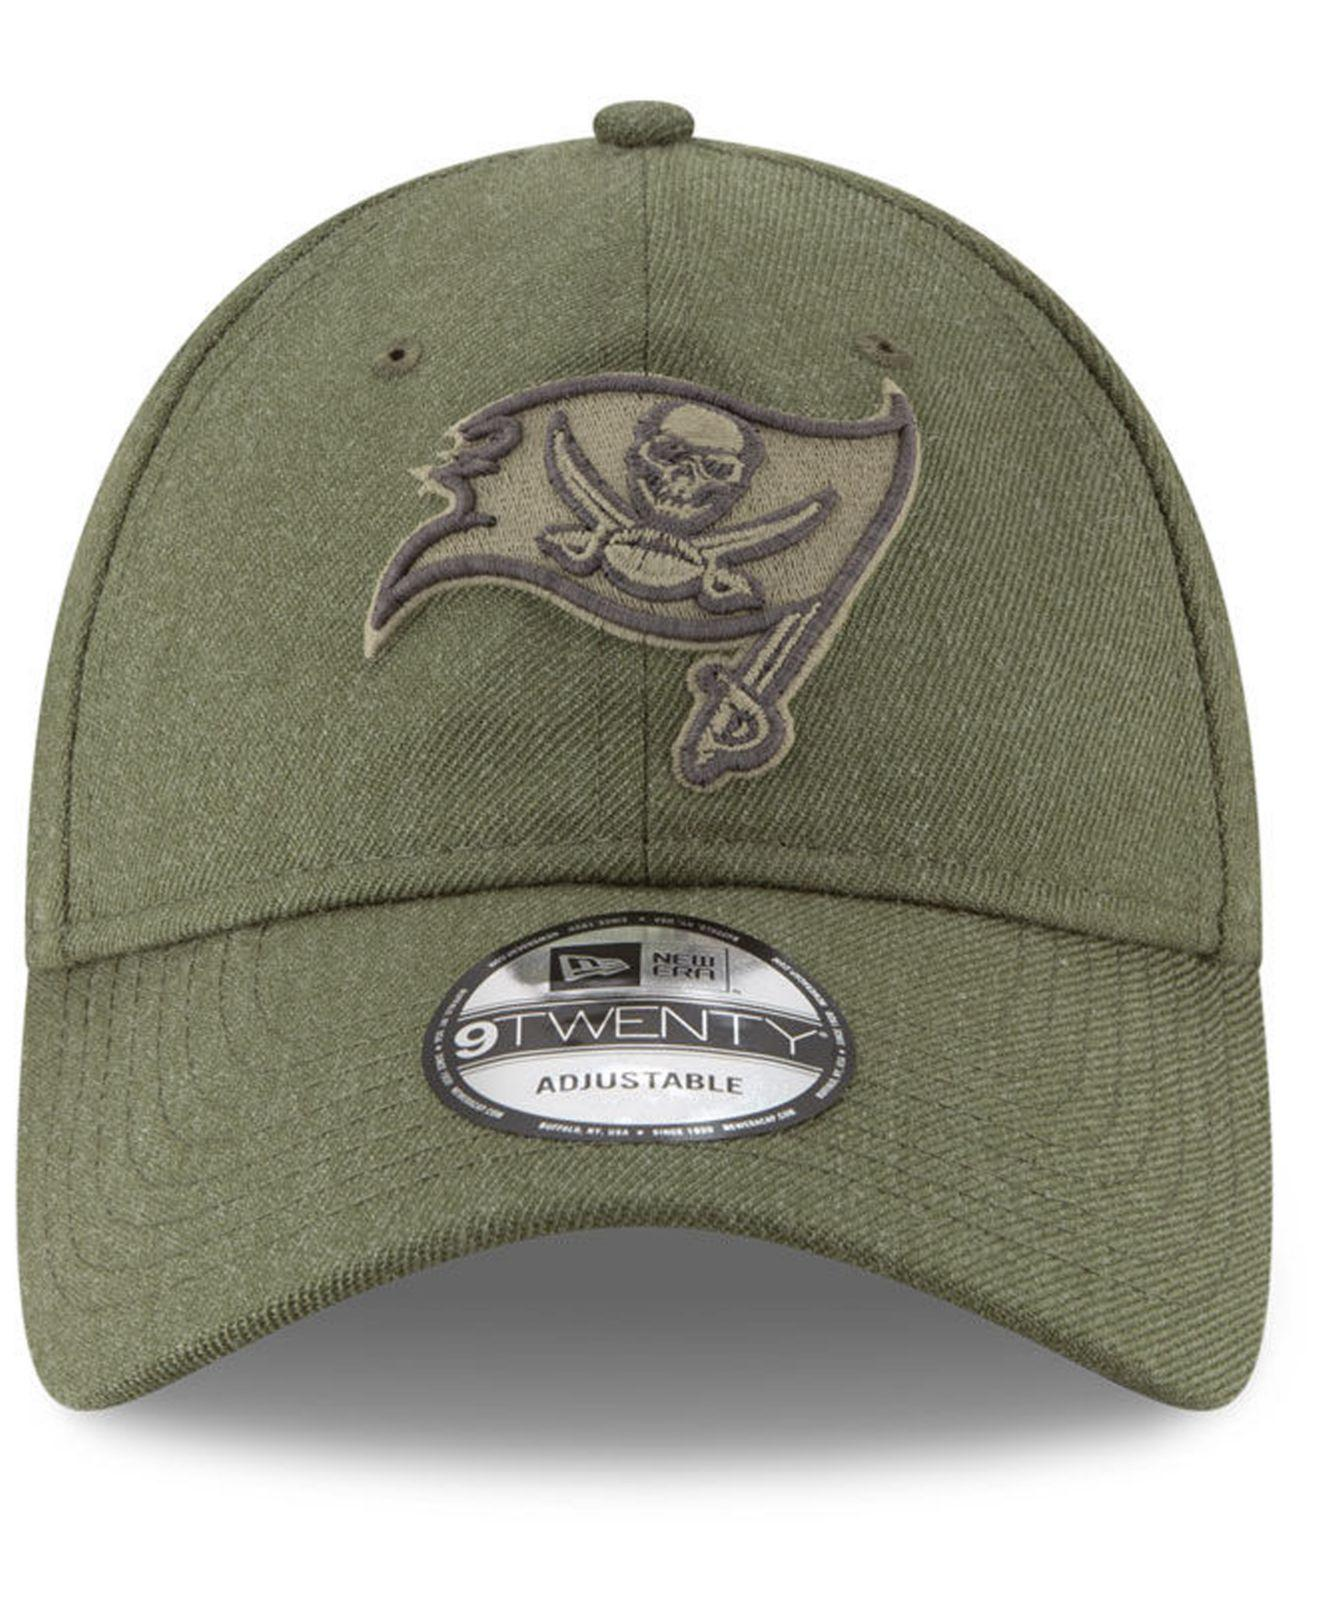 d0e1af803 ... official store lyst ktz tampa bay buccaneers salute to service 9twenty  cap in green for men ...